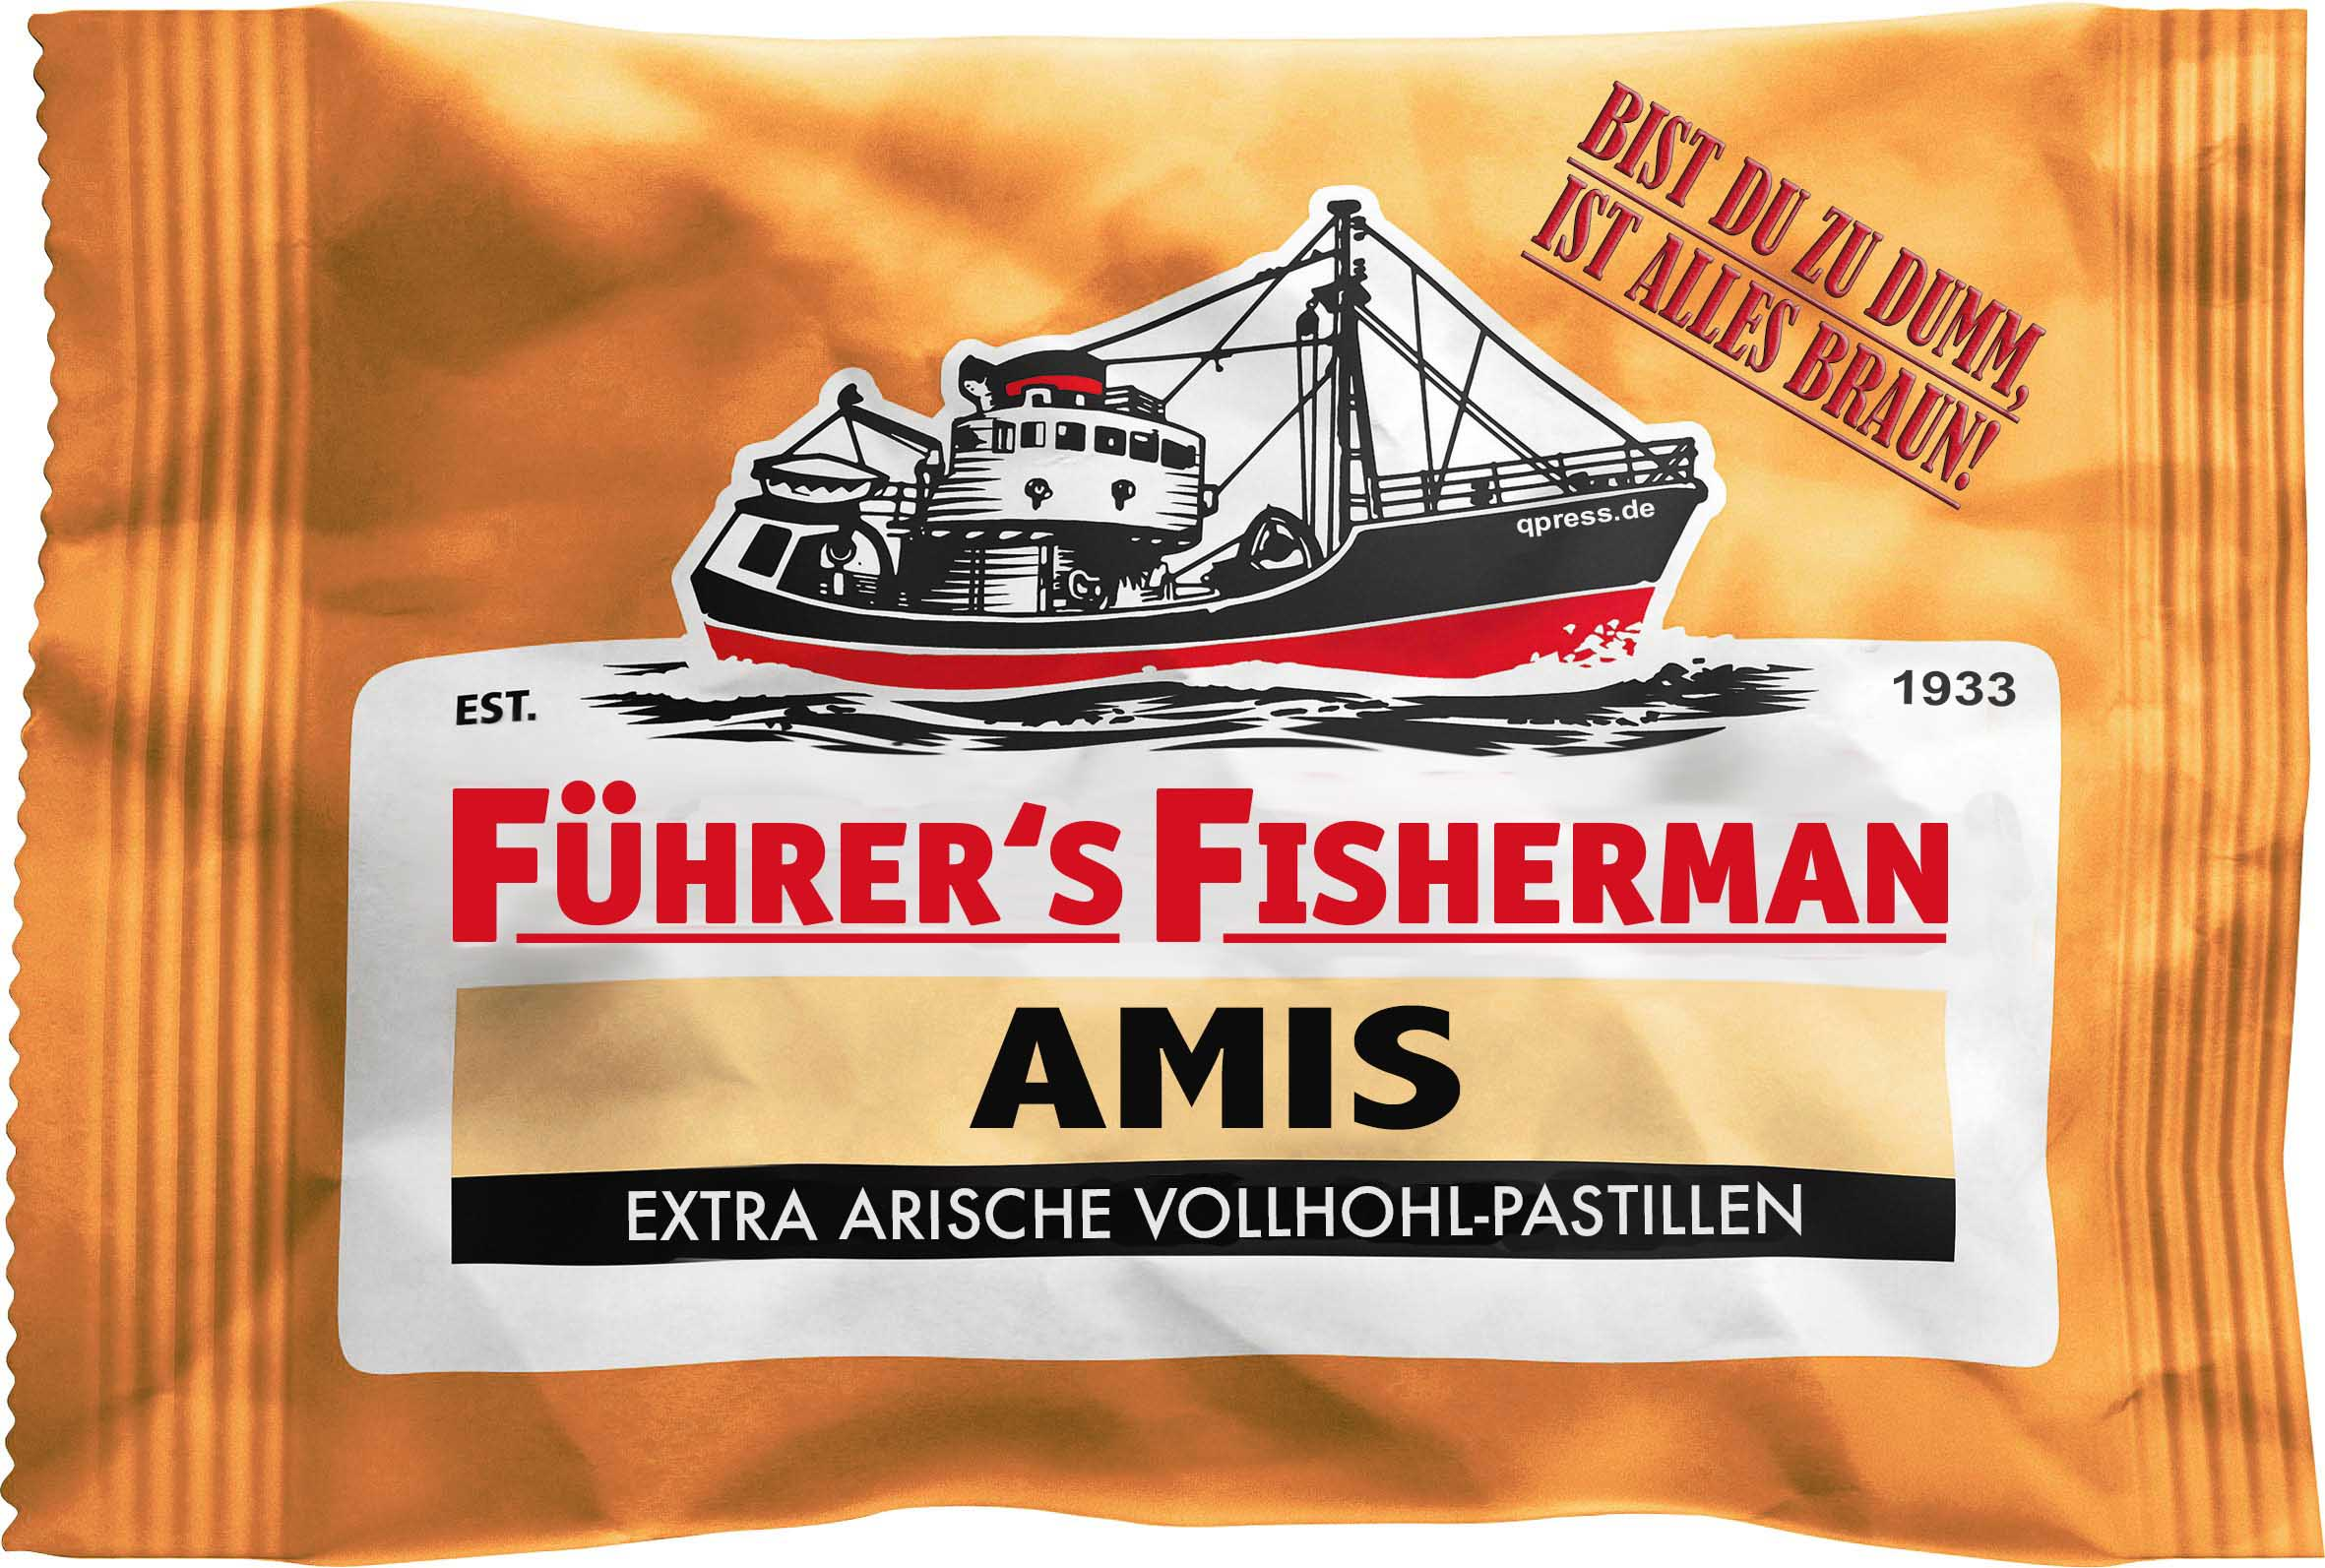 Fuehrers-Fisherman-Friend-Amis-Vollhohl-Pastillen